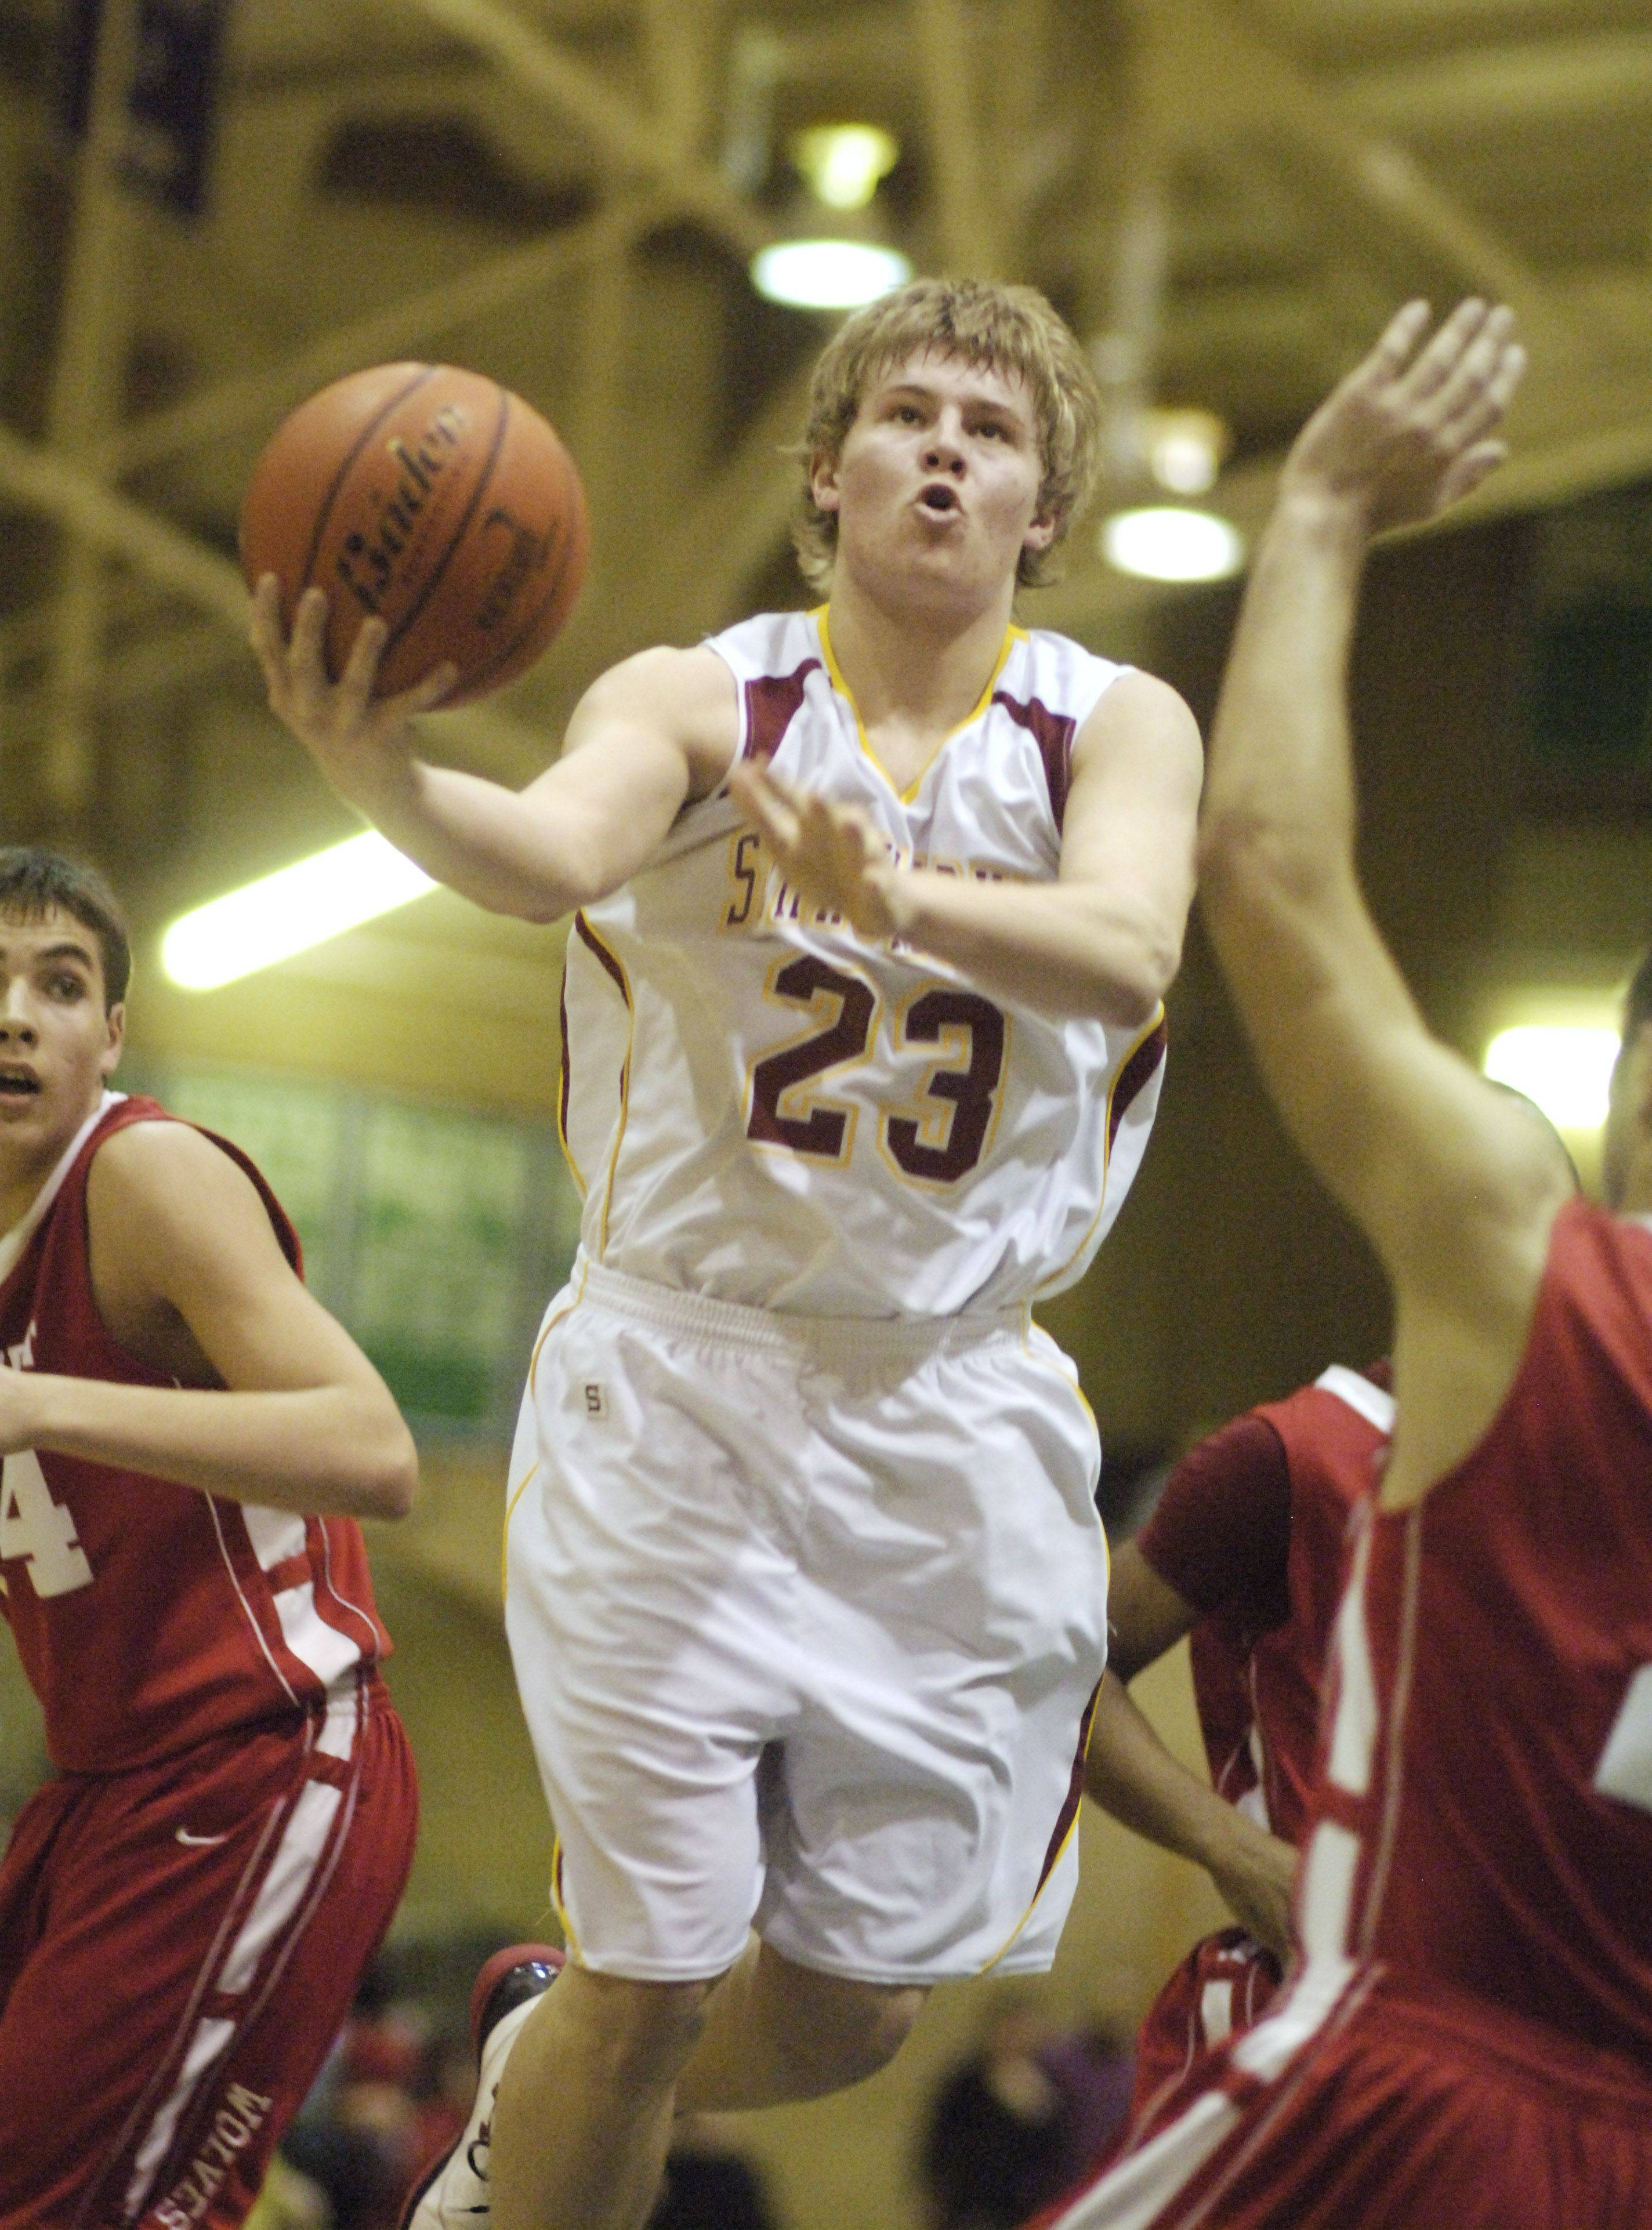 Schaumburg's Kyle Bolger drives to the basket against Niles West.